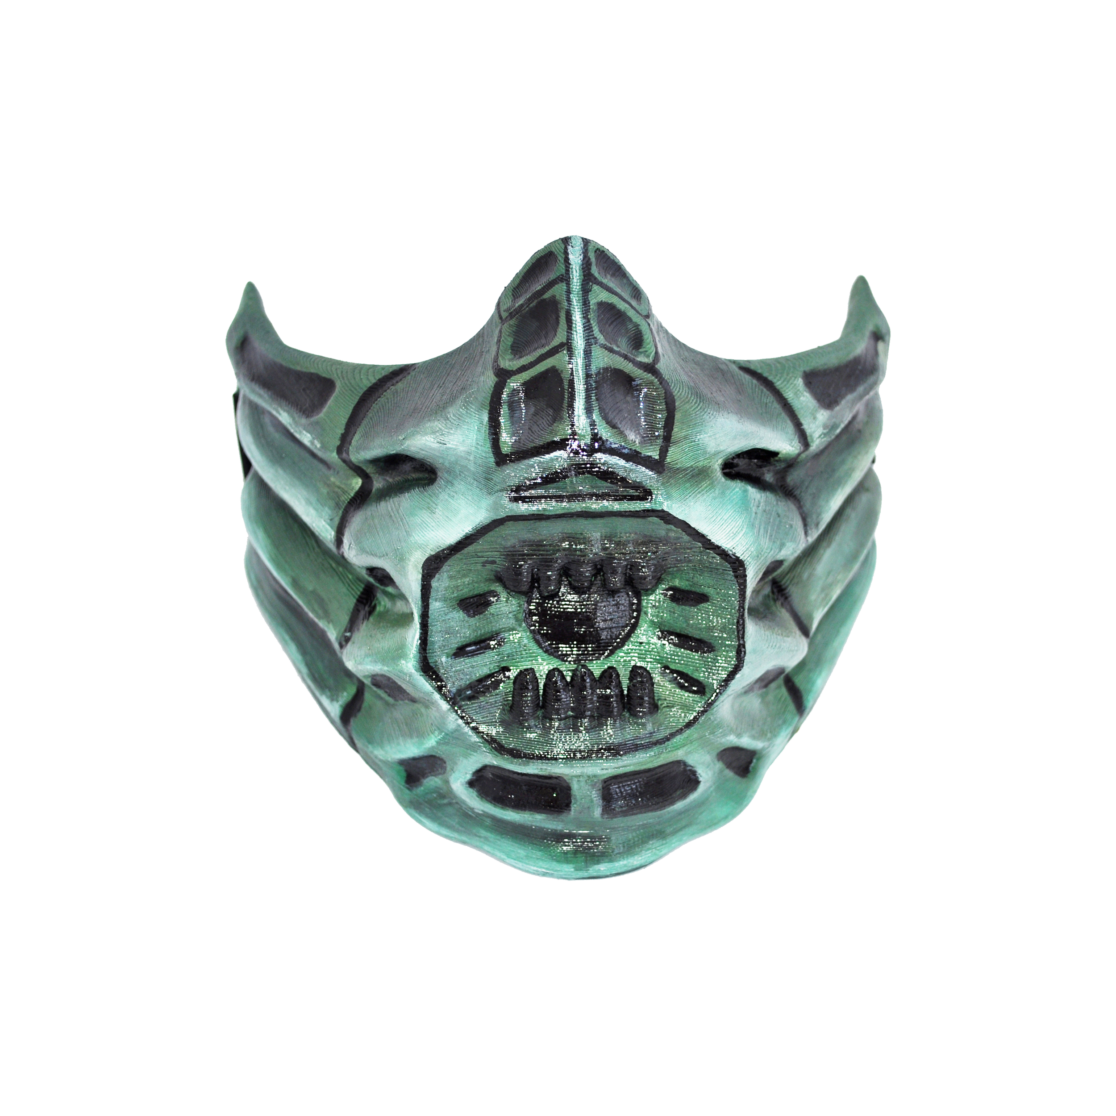 Reptile Mask From Mk Cosplay Or Airsoft Mask Costumes From Destiny Star Wars Overwatch Designedby3d Com Airsoft Mask Mortal Kombat Mask